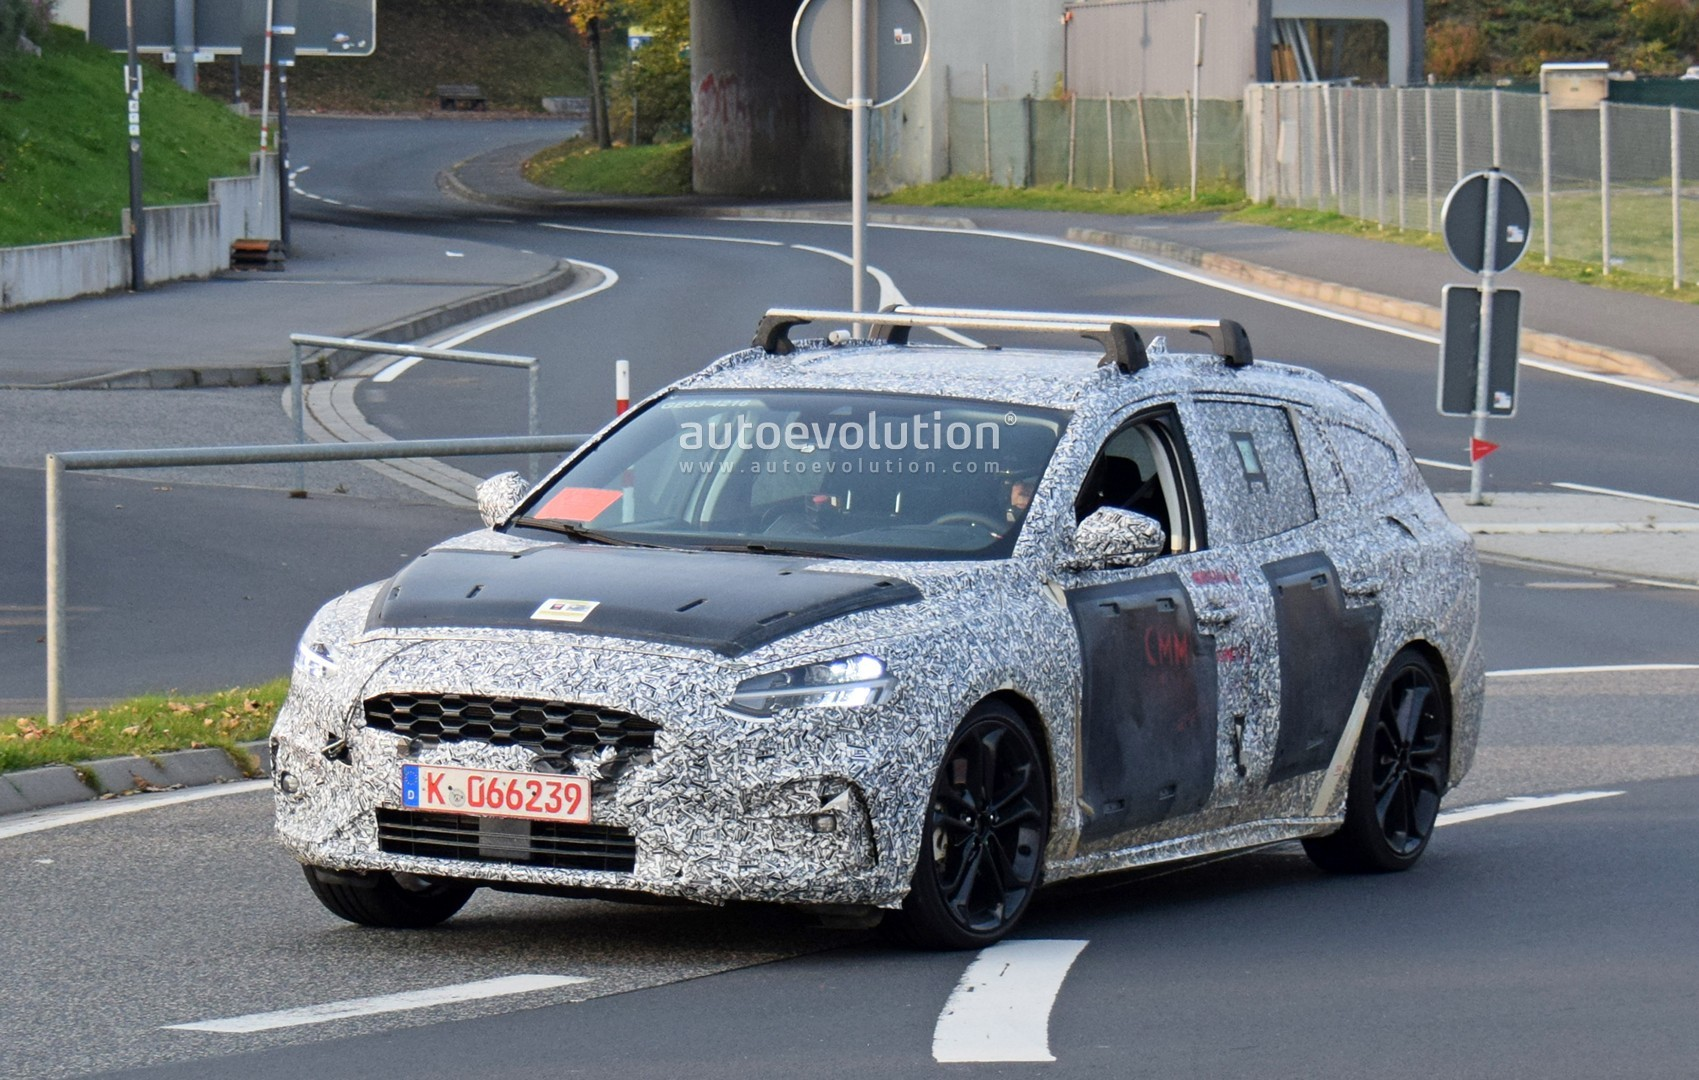 spyshots  2019 ford focus st wagon reveals volvo-inspired headlights